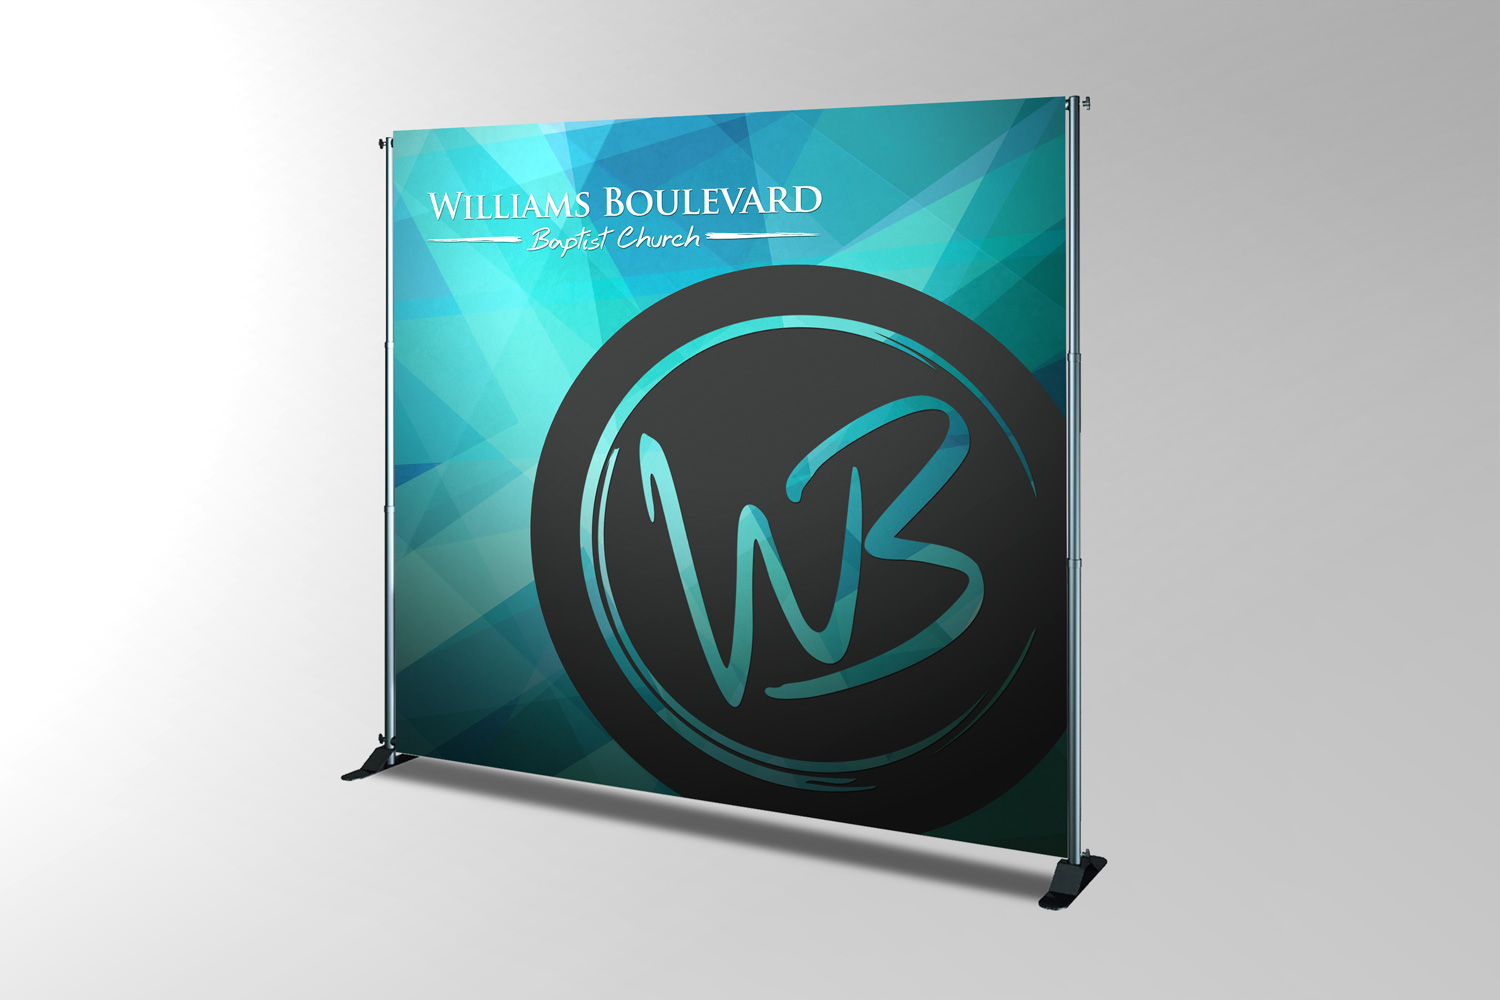 Church backdrop banner design and printing examples ideas for services